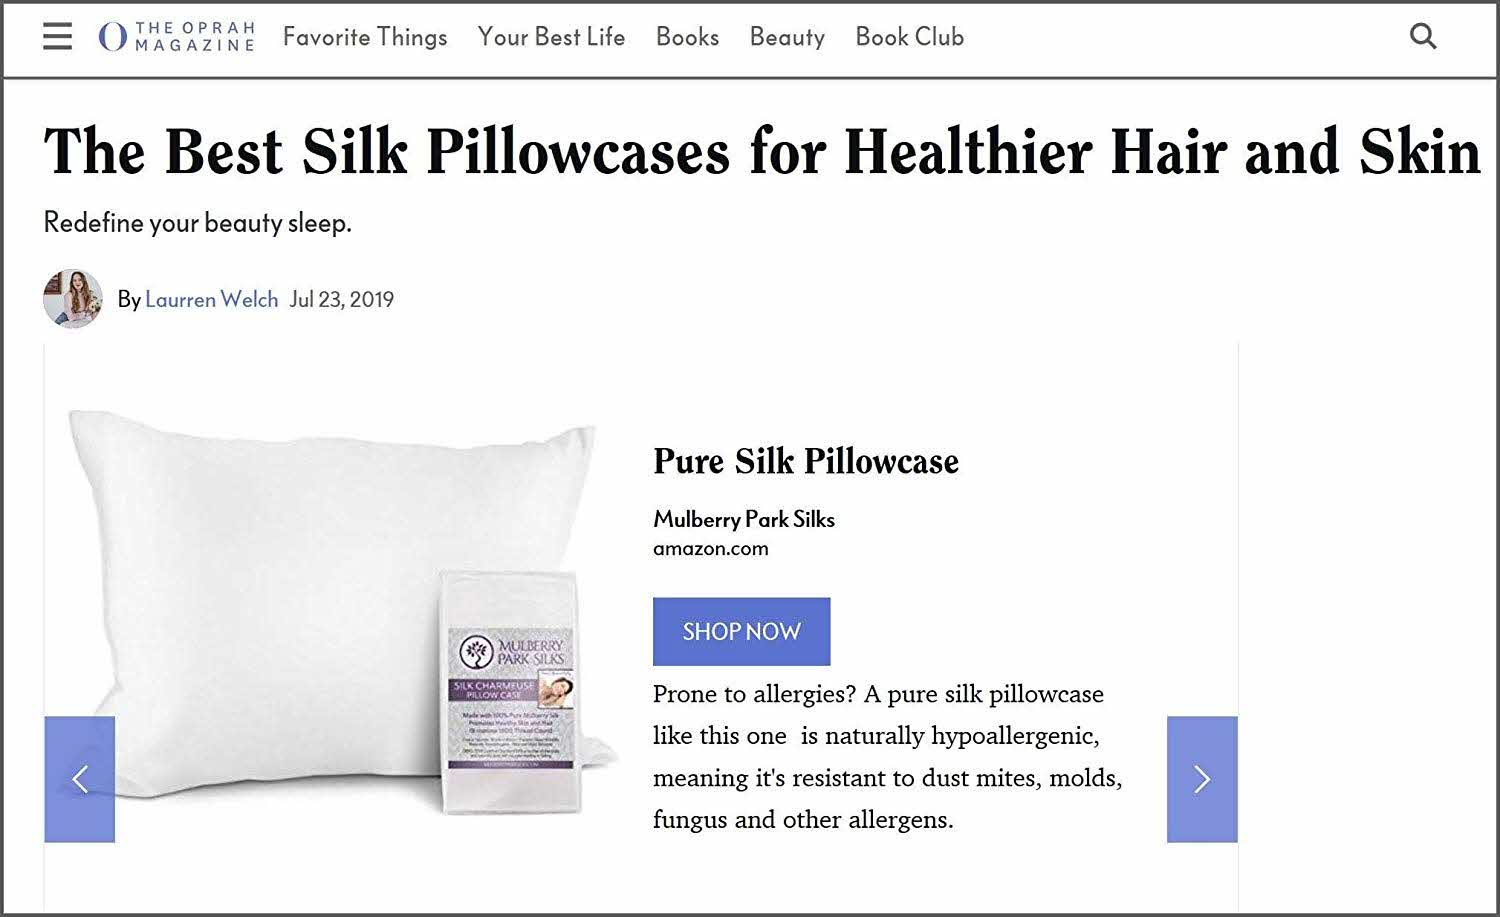 Oprah Magazine Names Mulberry Park Silks pillow case among the Best Silk Pillowcases for Healthier Hair and Skin